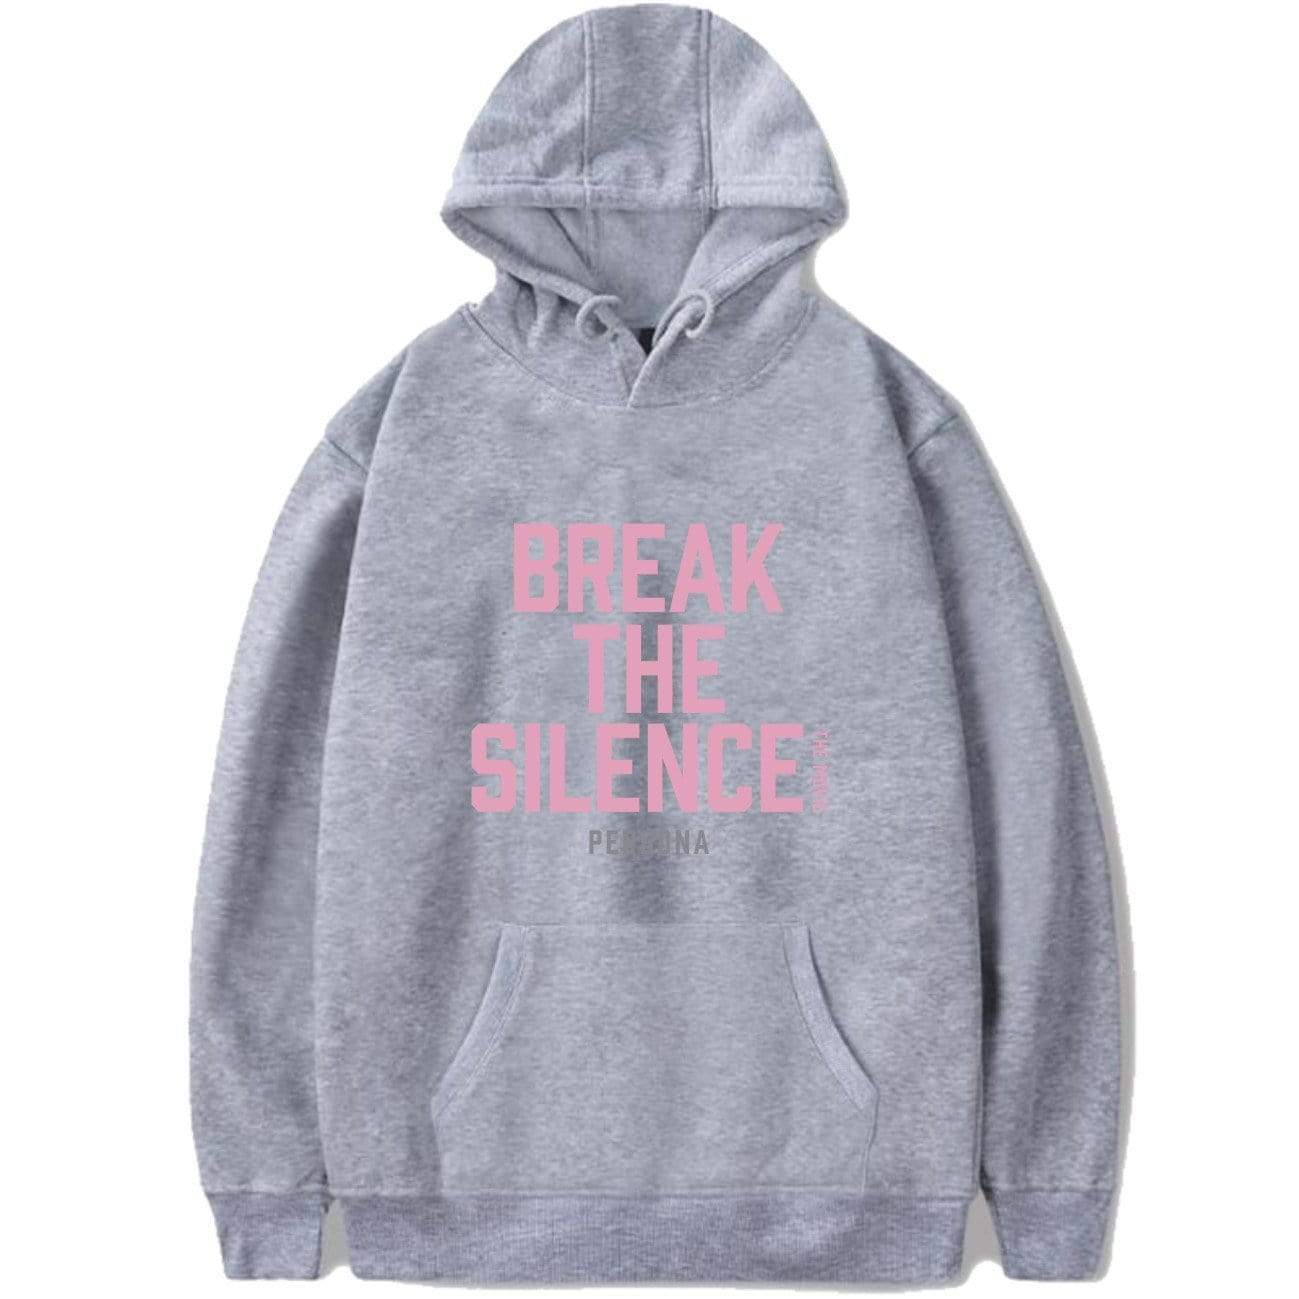 Bangtan BREAK THE SILENCE Hoodie